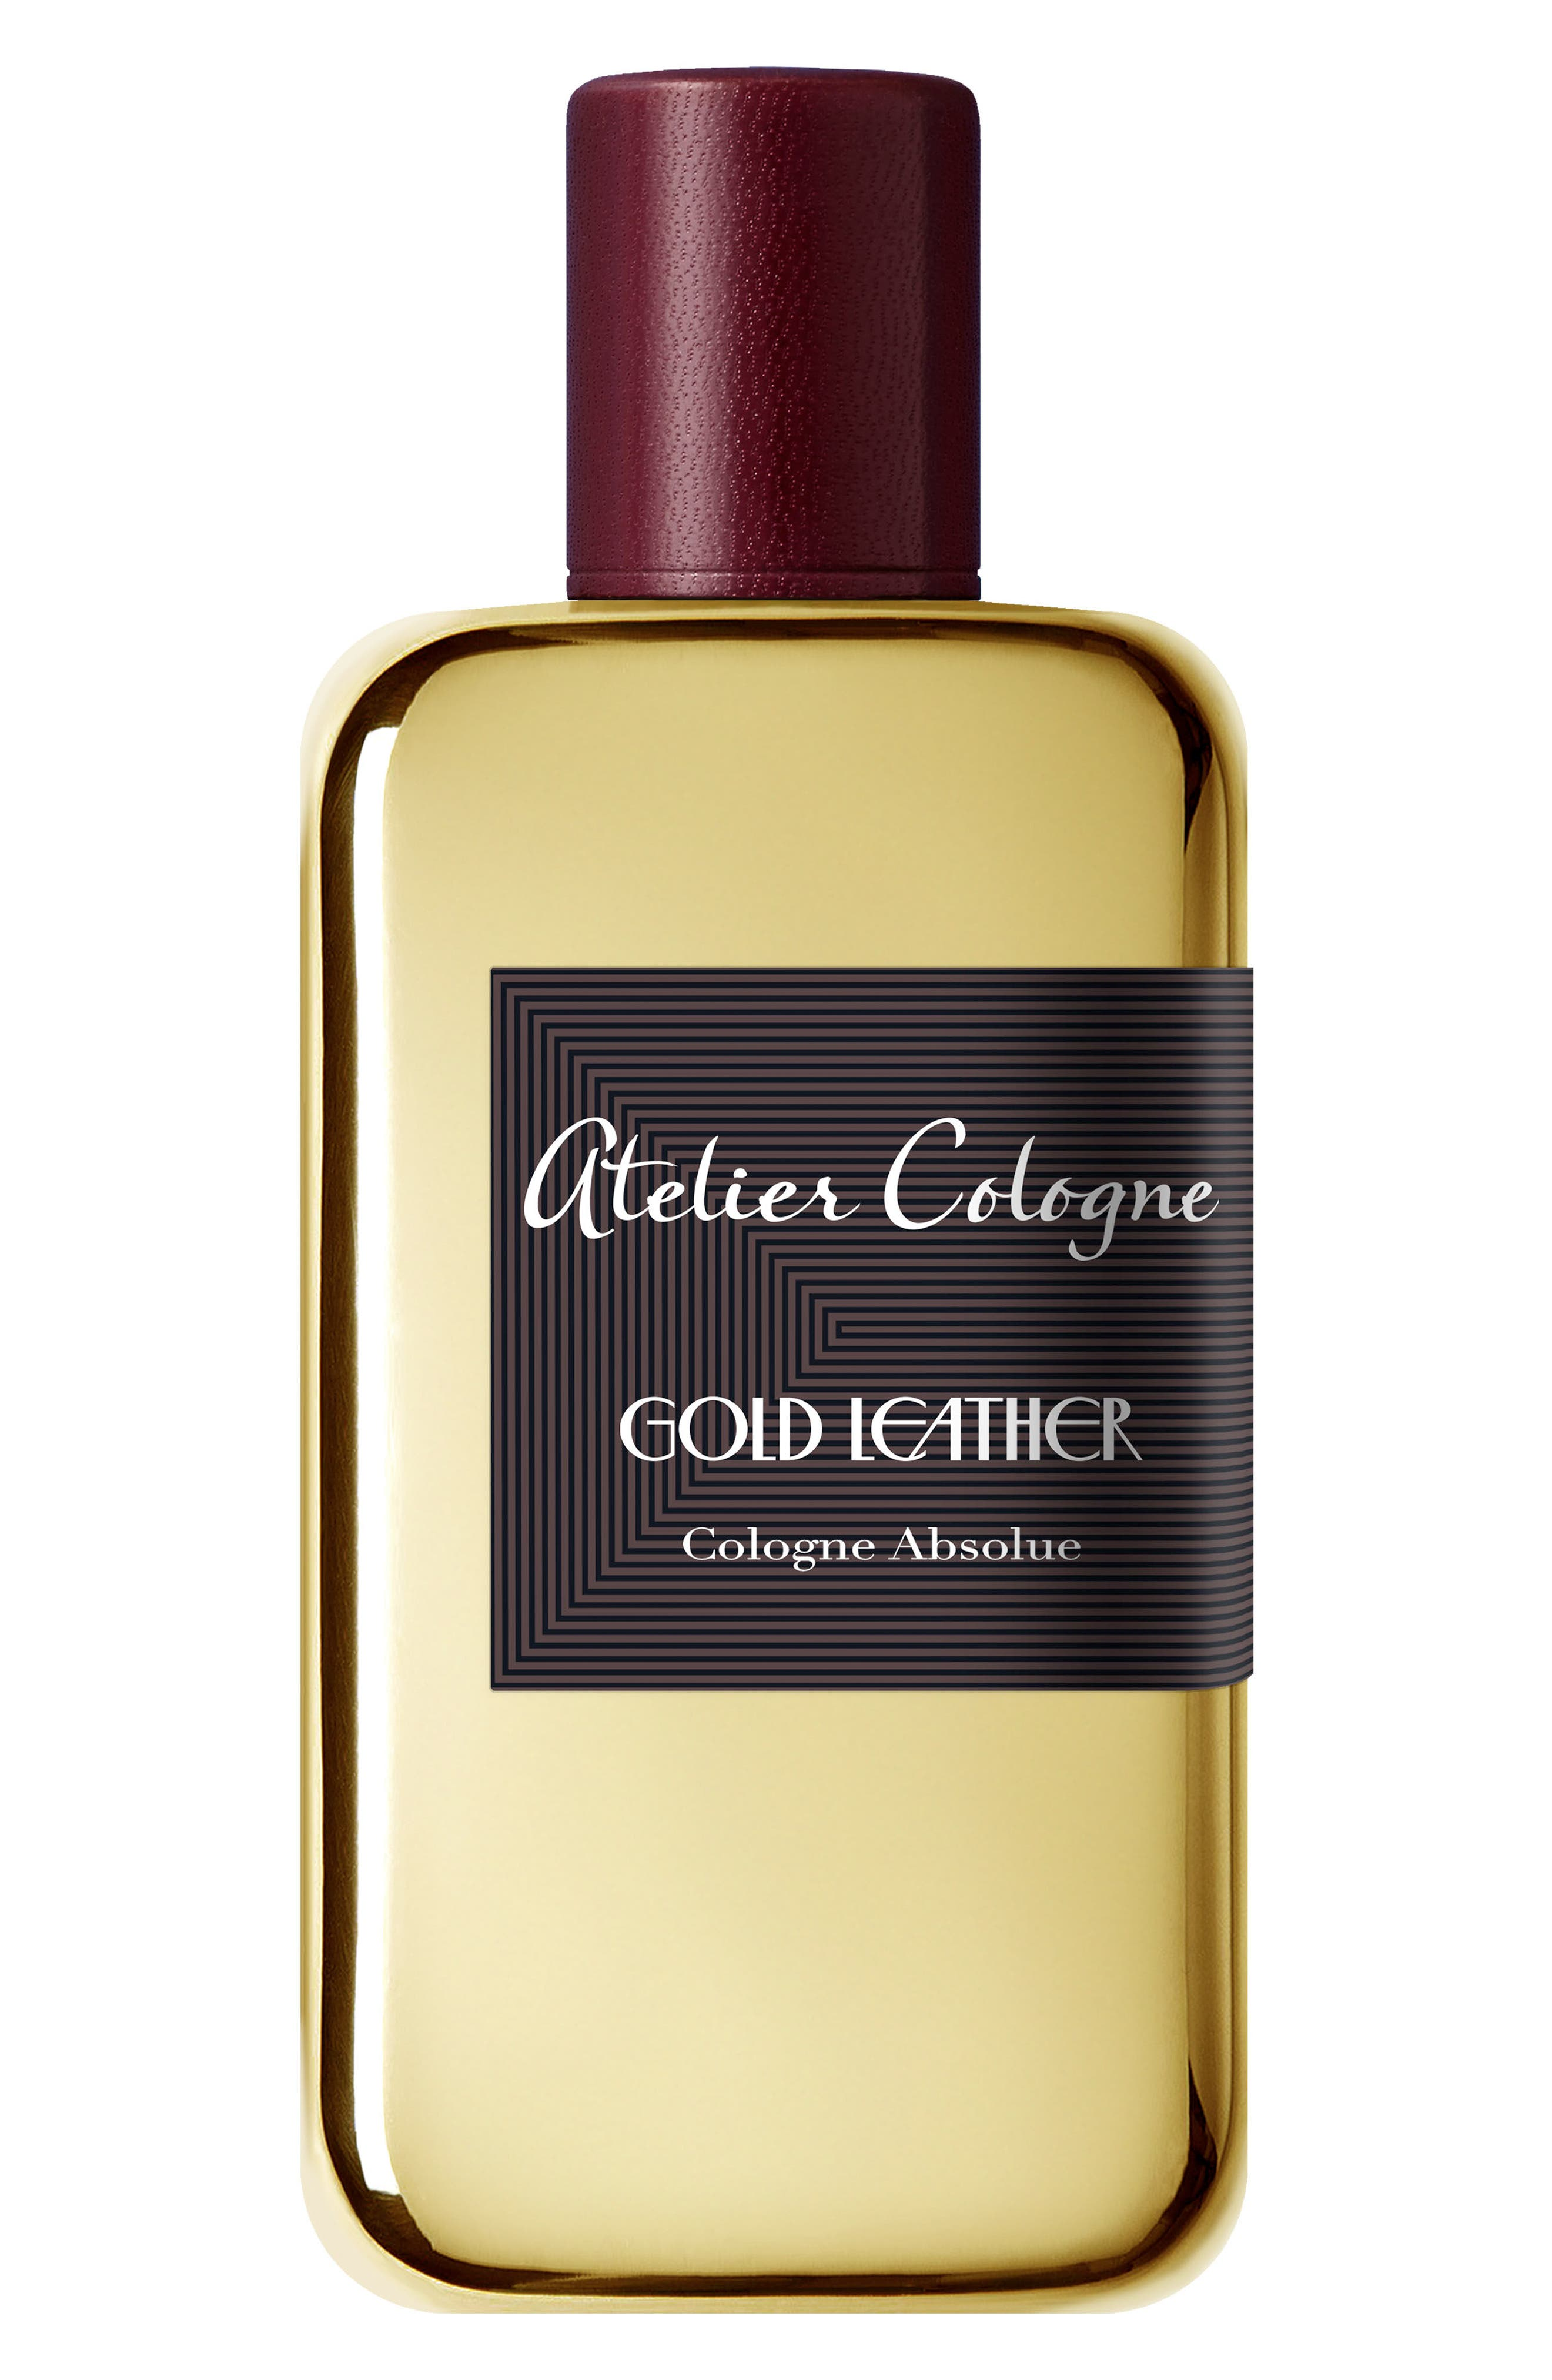 Gold Leather Cologne Absolue,                             Main thumbnail 1, color,                             NO COLOR